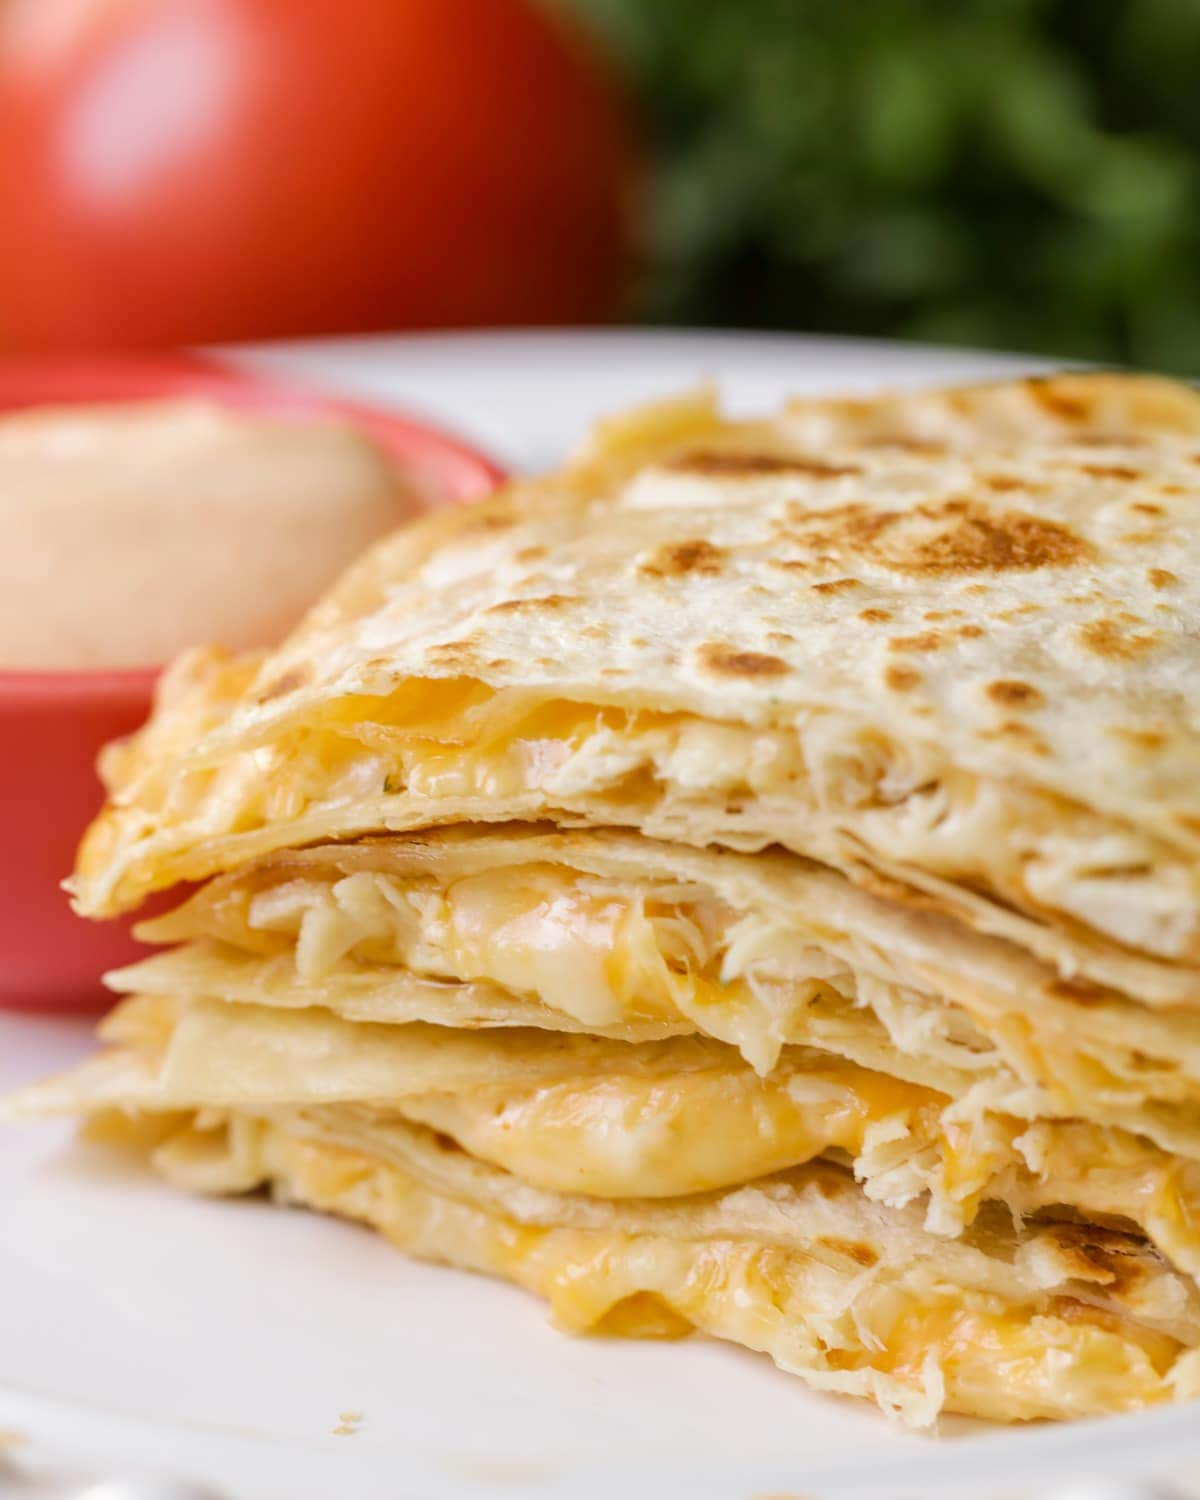 Chicken and cheese Quesadilla slices stacked on a plate